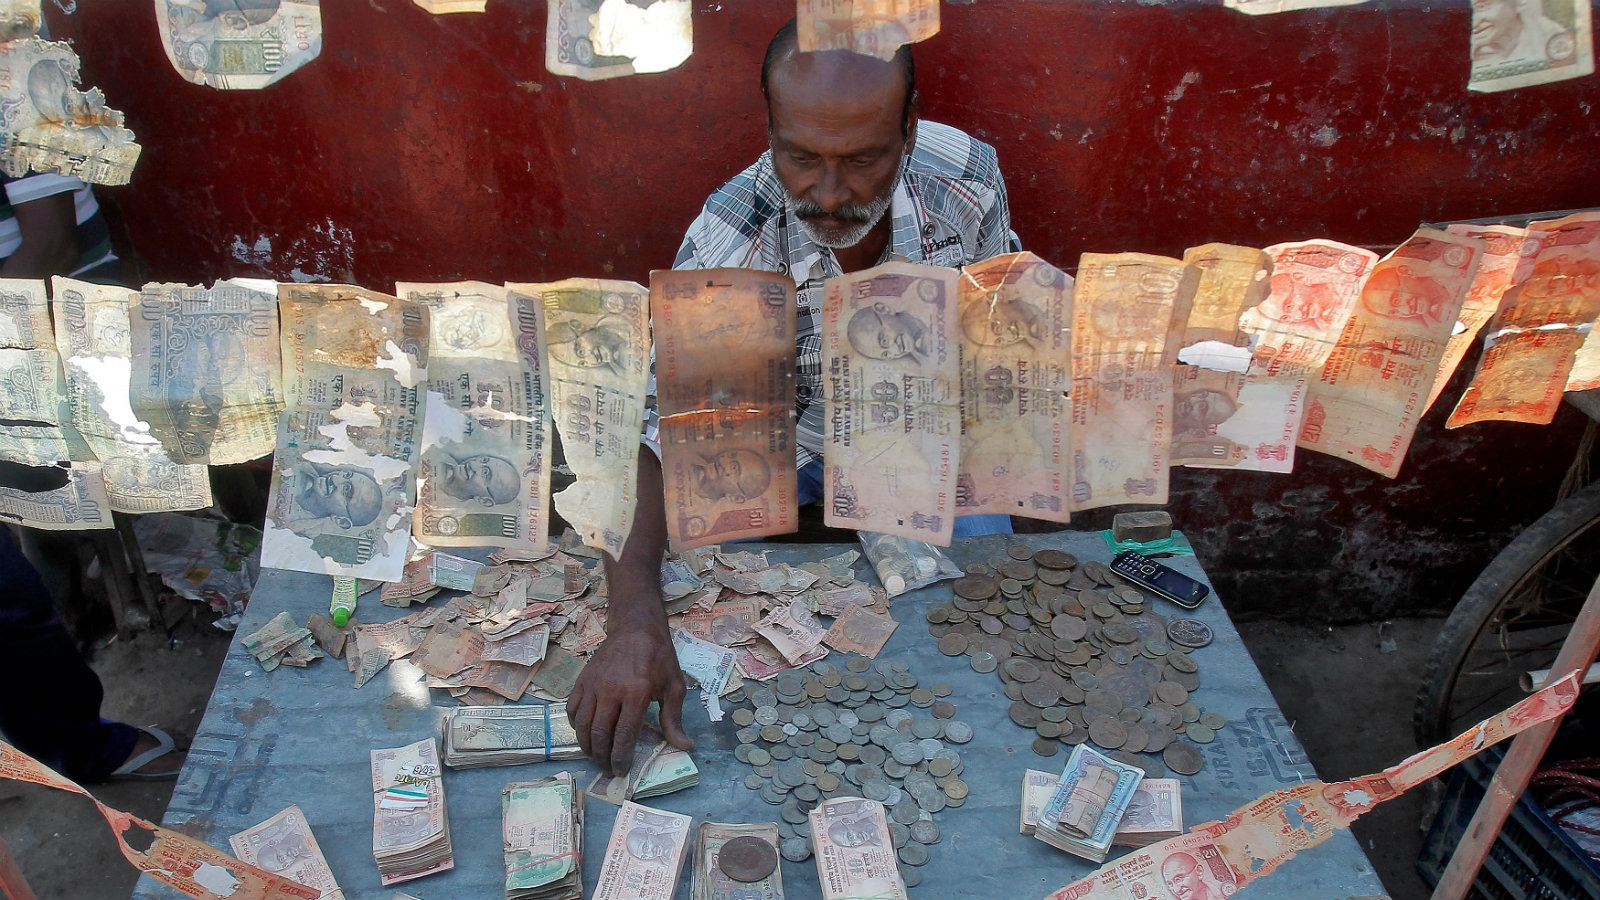 A roadside currency exchange vendor sorts Indian currency notes at his stall in Agartala, India, December 6, 2016.